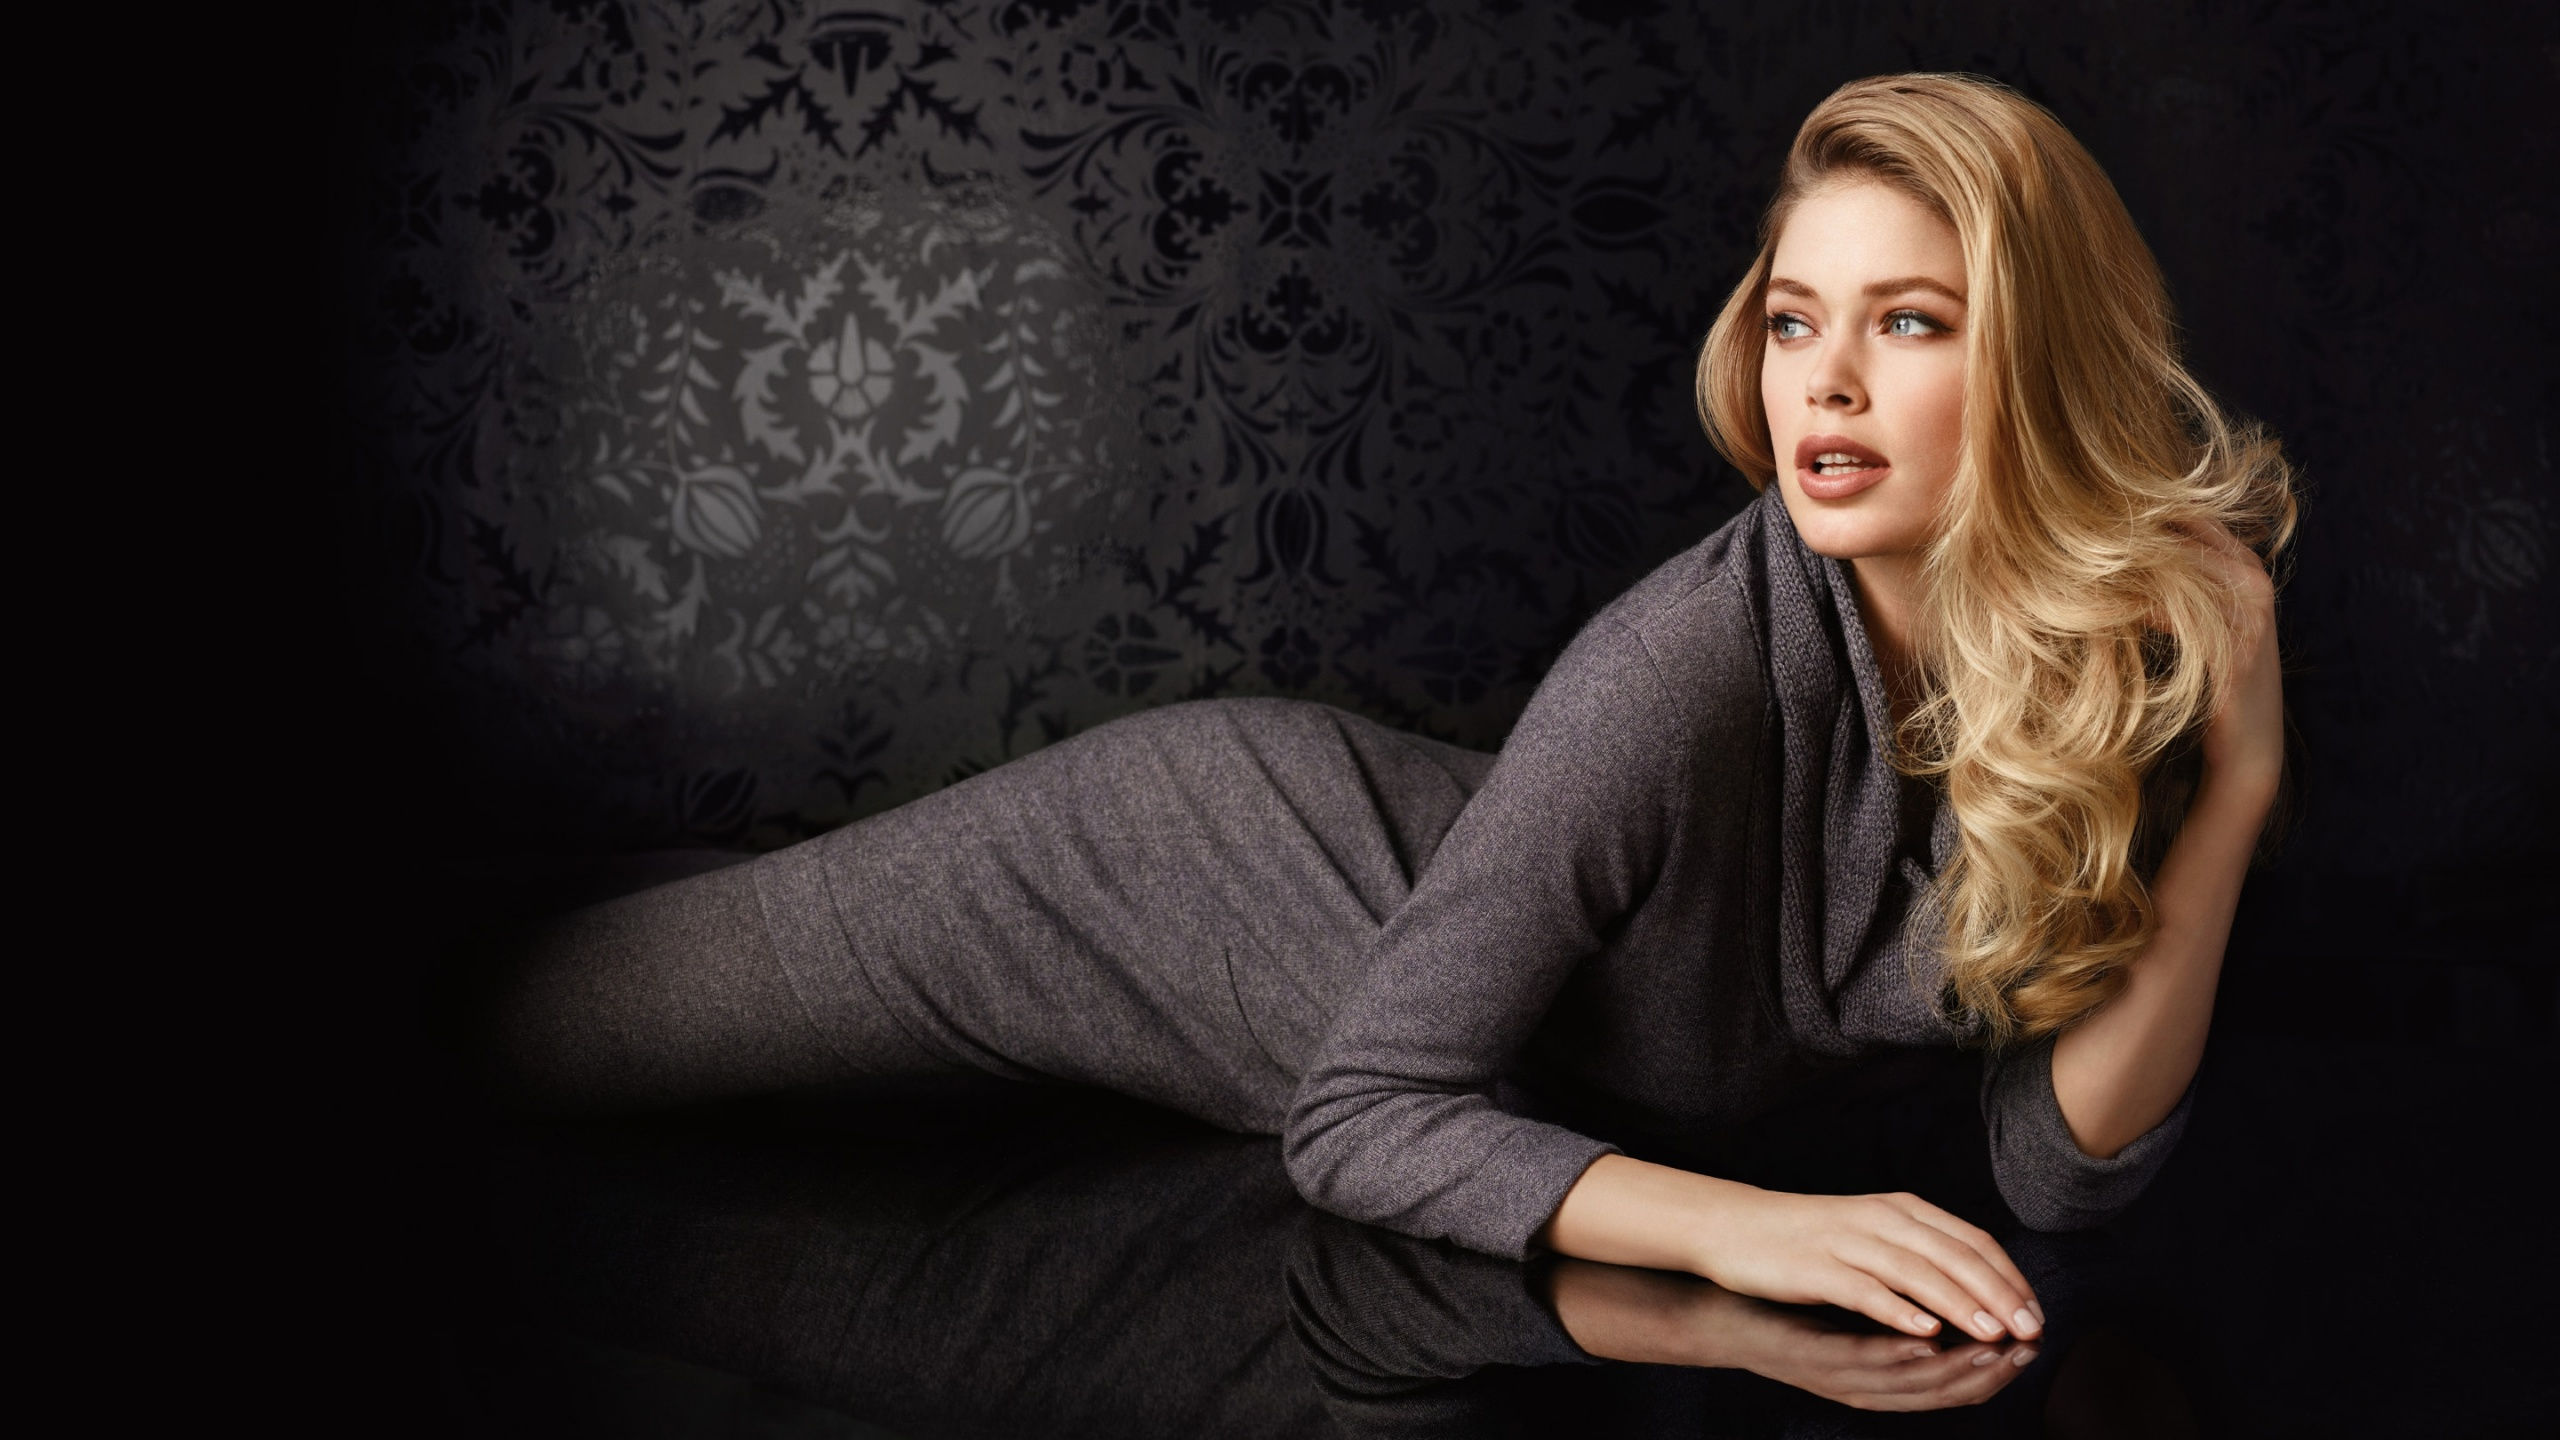 21 gorgeous hd doutzen kroes wallpapers for New best pic